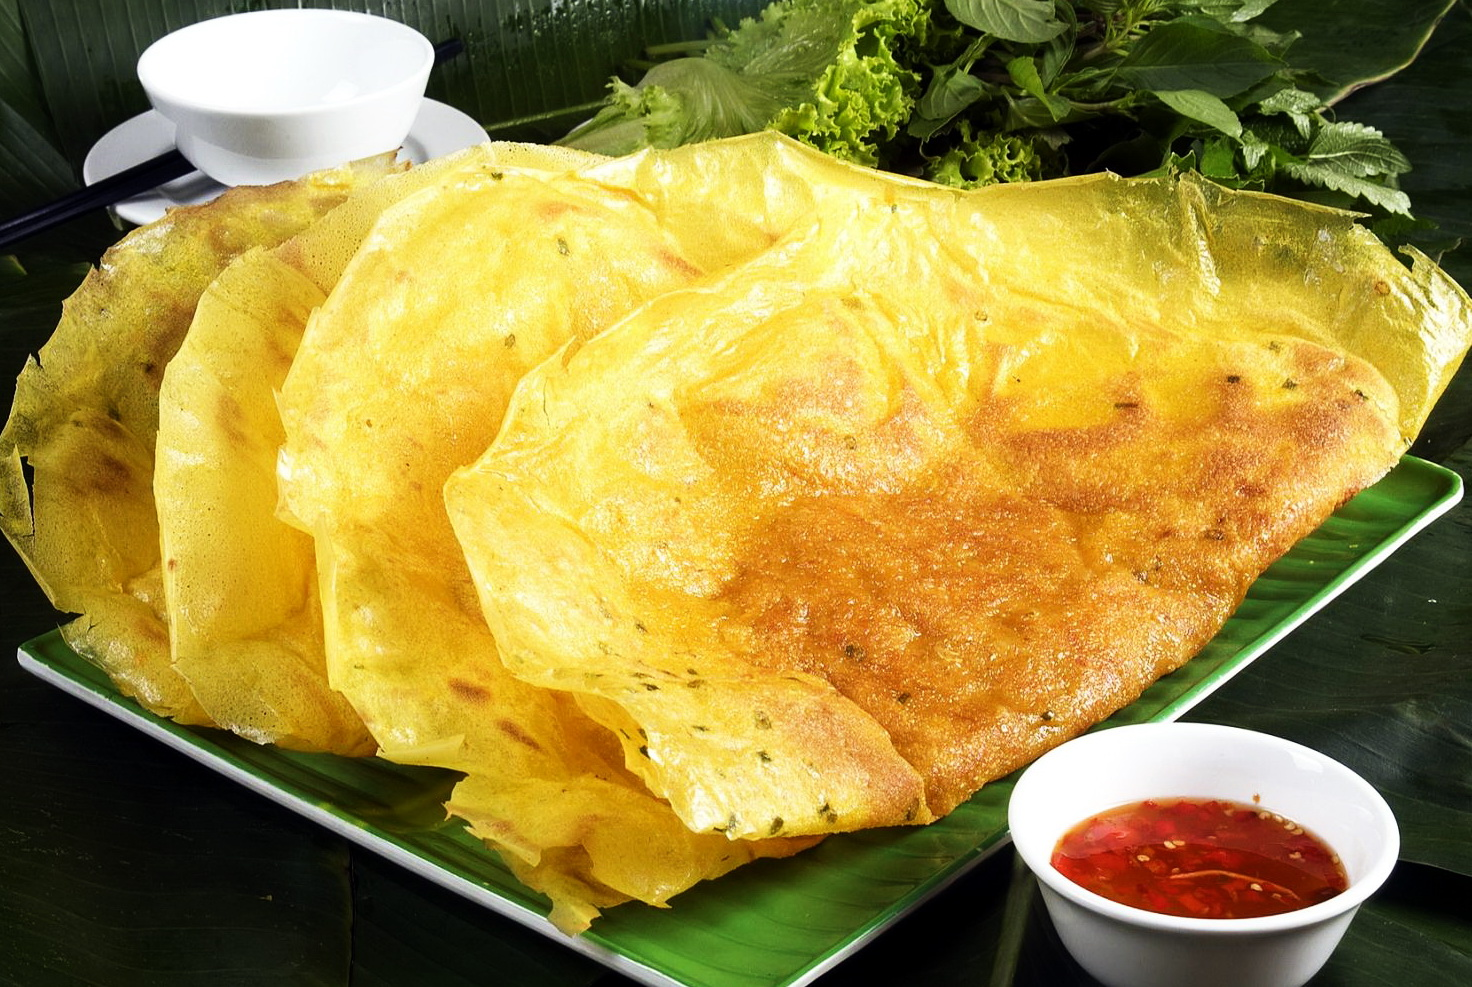 Banh Xeo in the South of Vietnam has the big size, for it is cooked in a very large frying pan - Photo: Internet